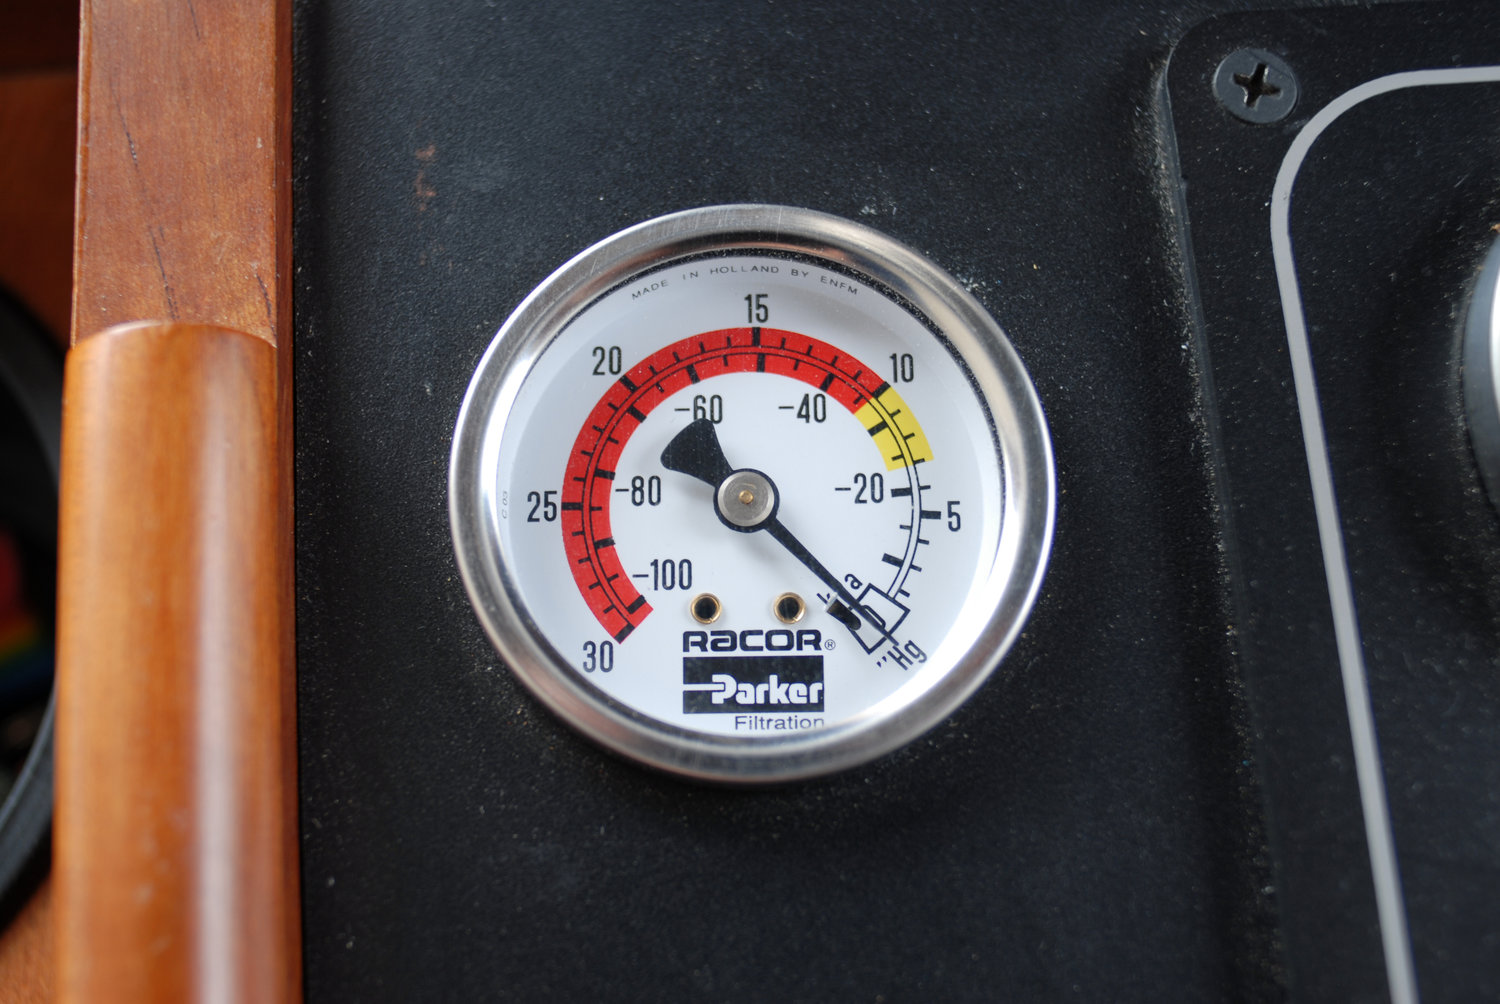 Monday Minute - A Fuel Filter Vacuum Gauge at Your Helm